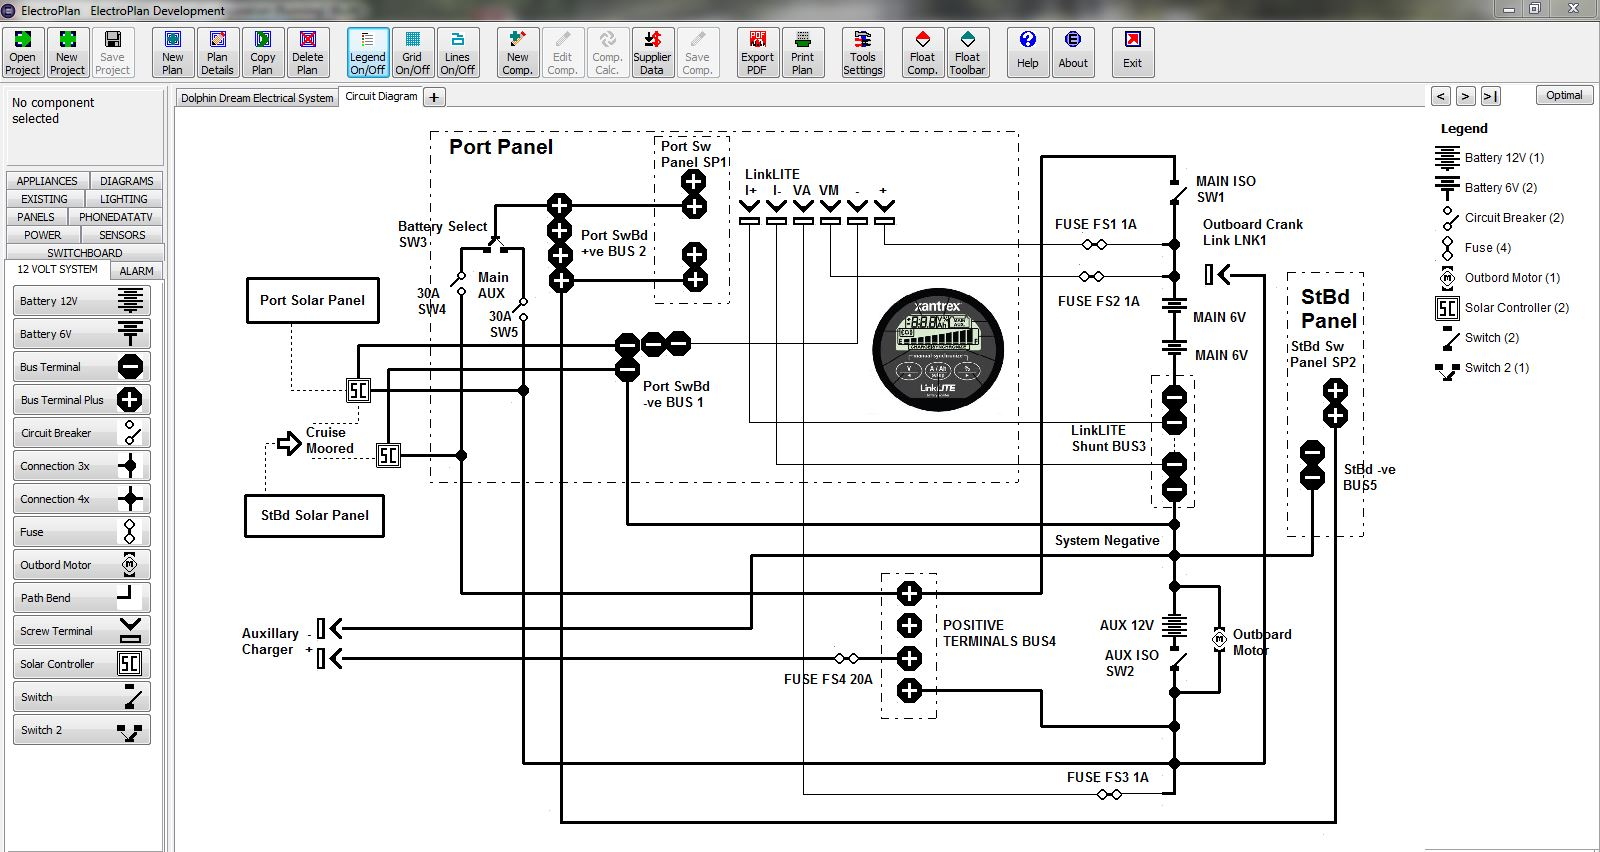 Screen Capture Electrical System 100 [ wiring diagram switchboard ] electrical system,greg  at readyjetset.co